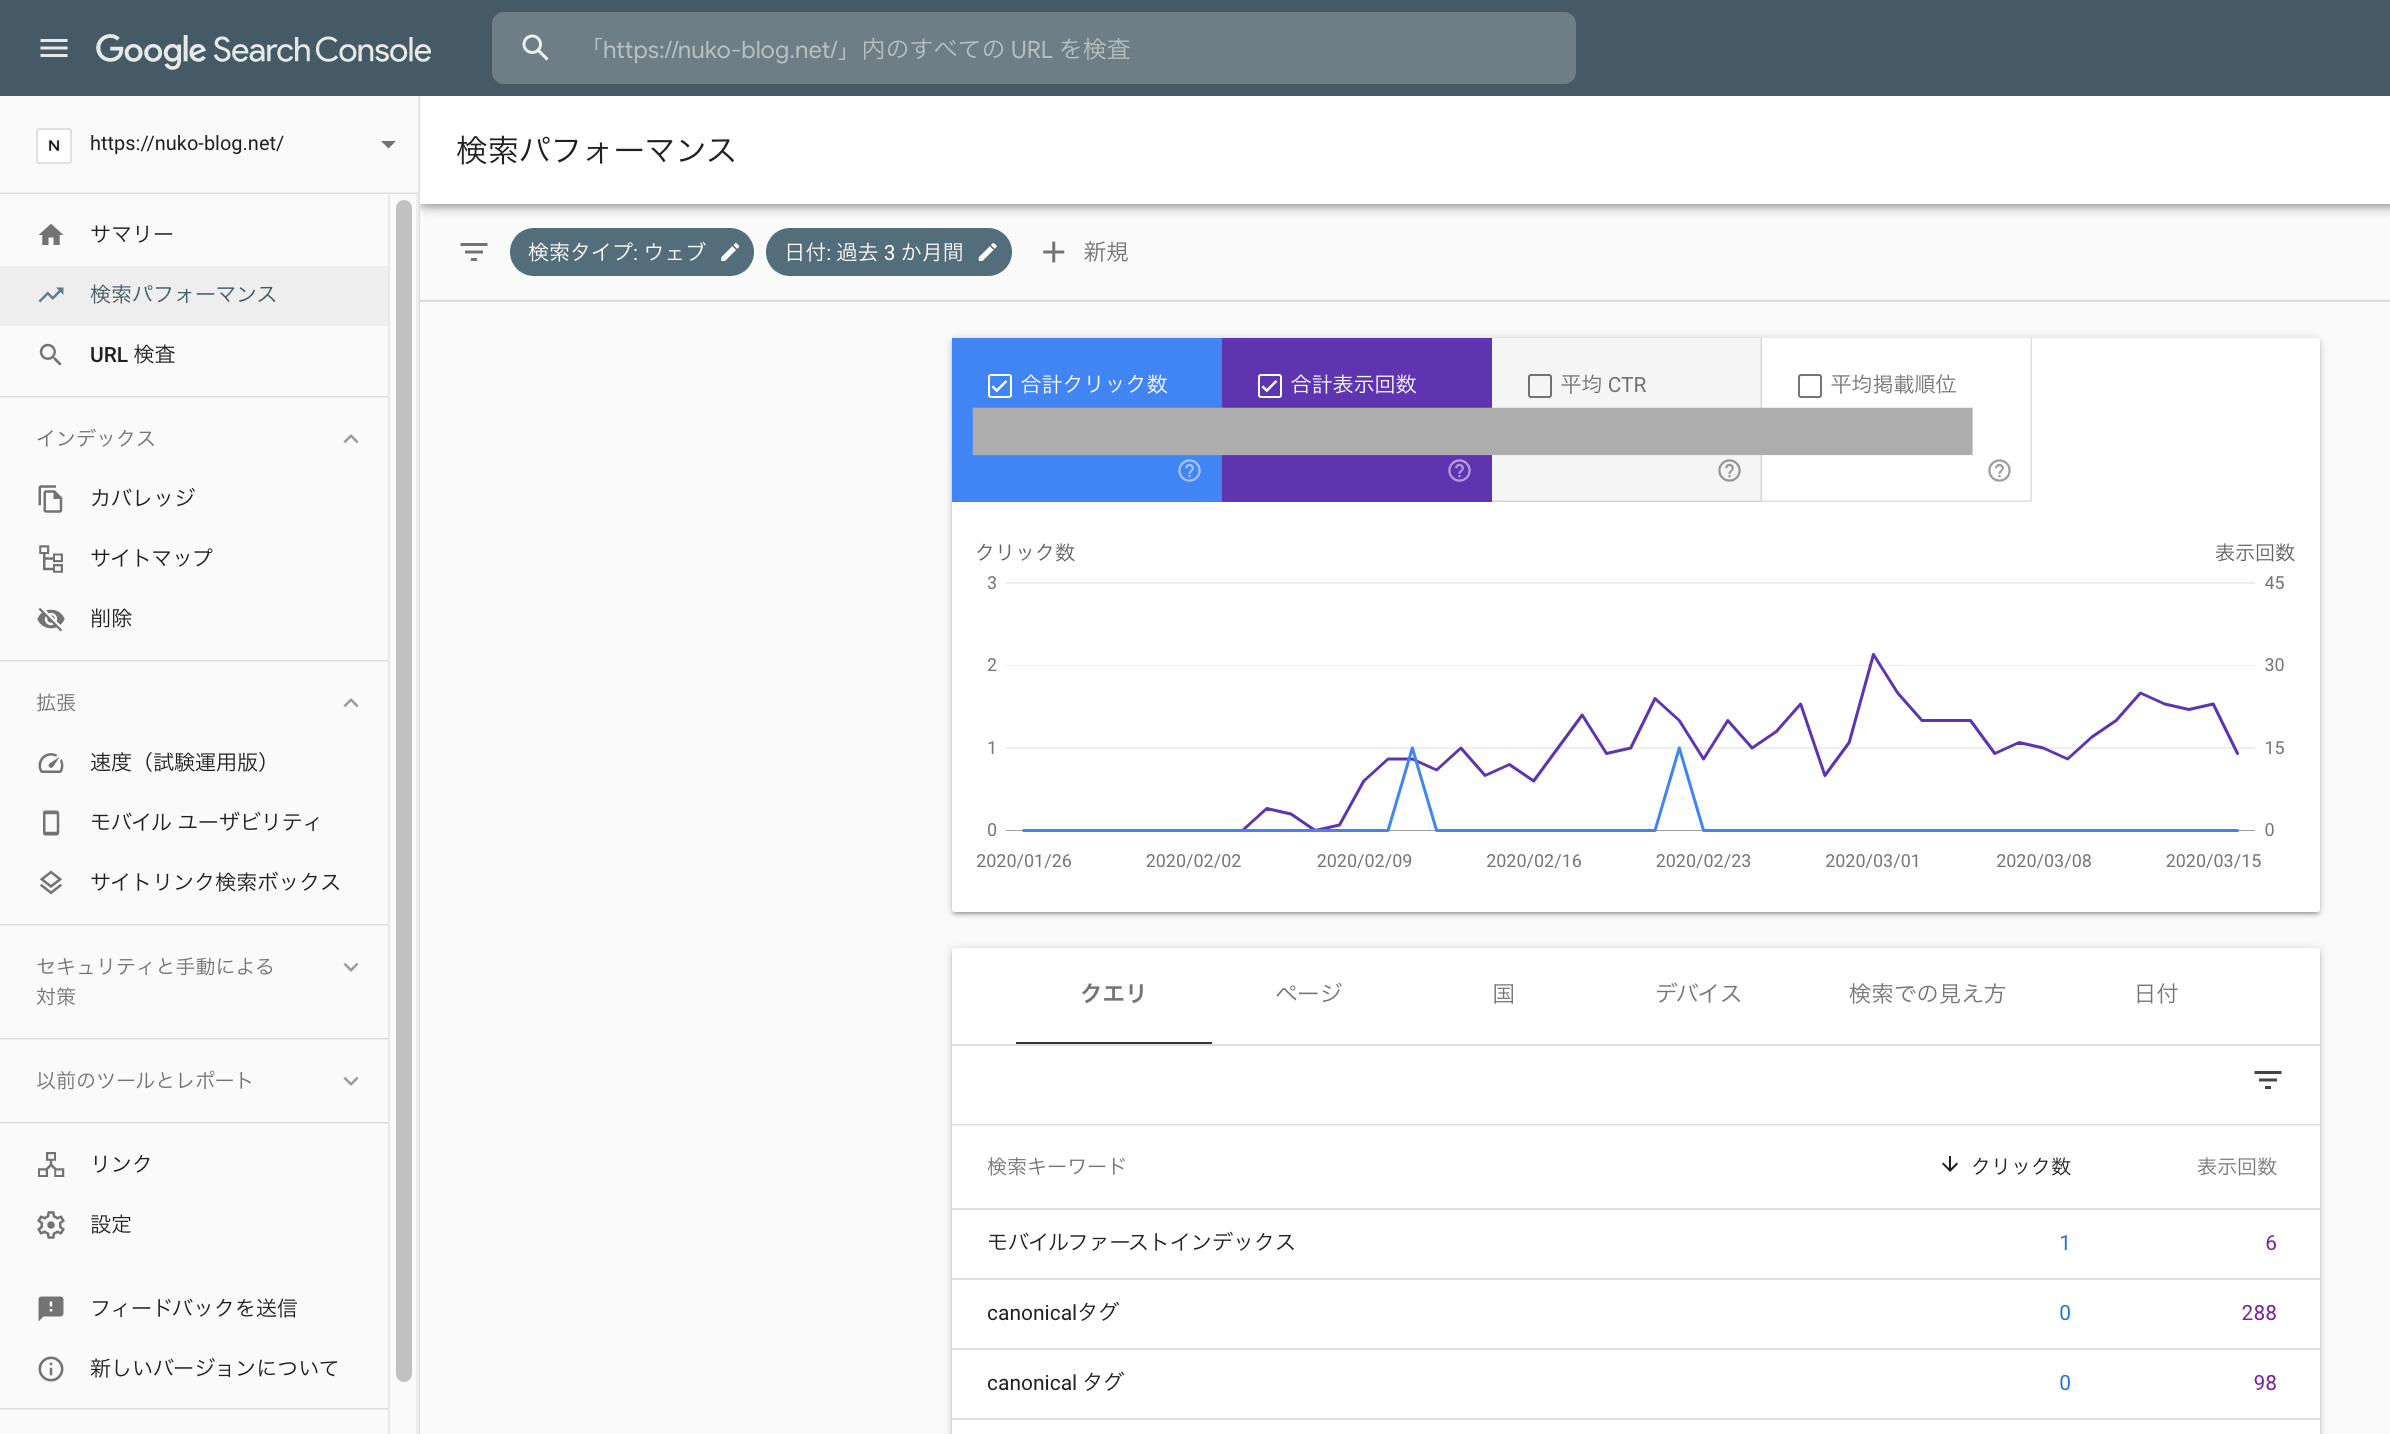 Google Search Consoleの検索パフォーマンス